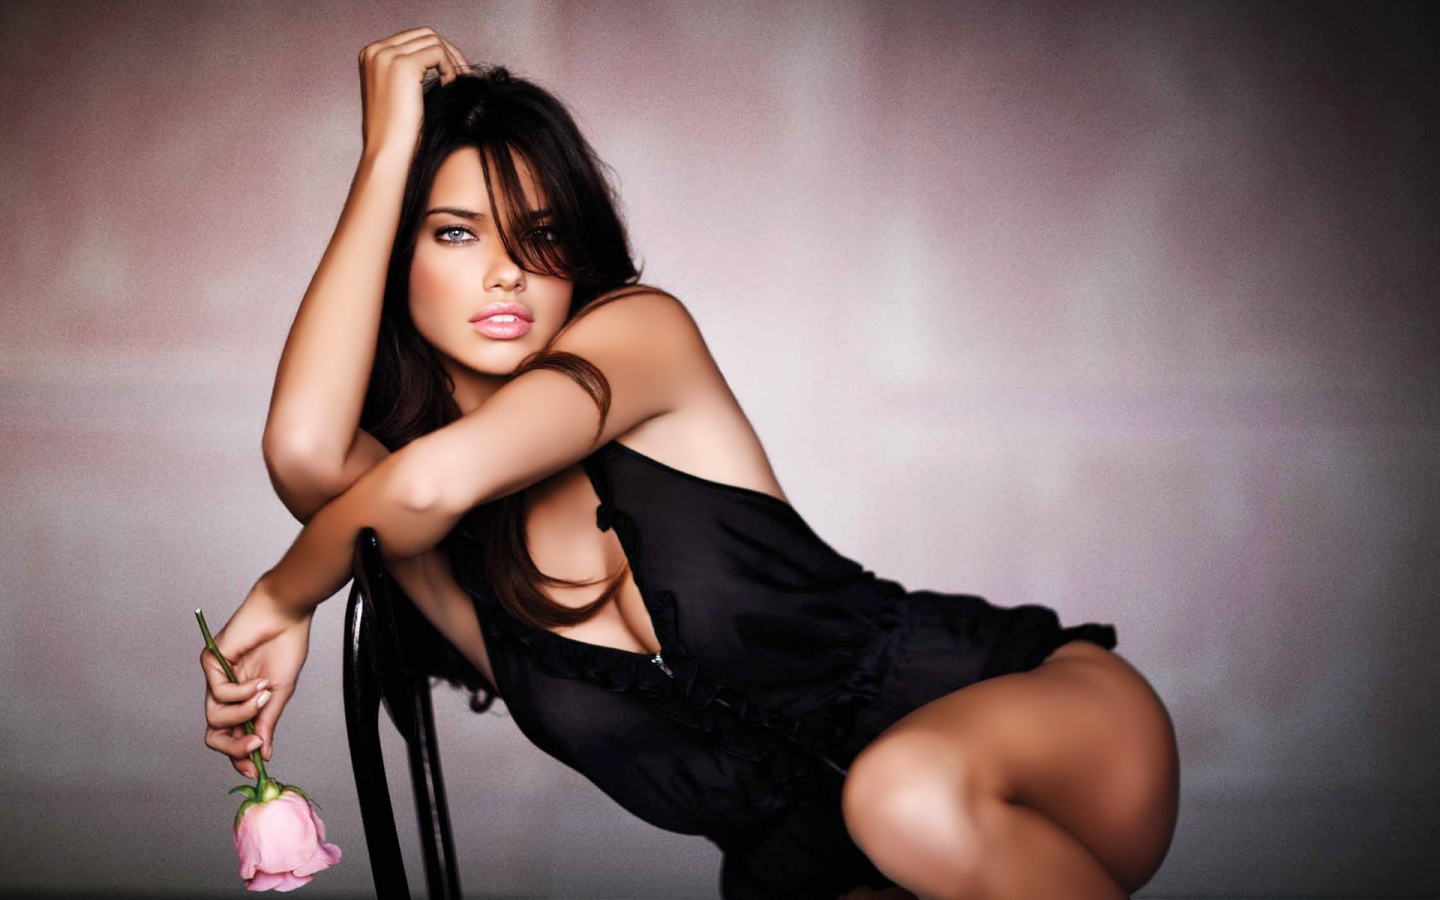 adriana lima photos - photo #11